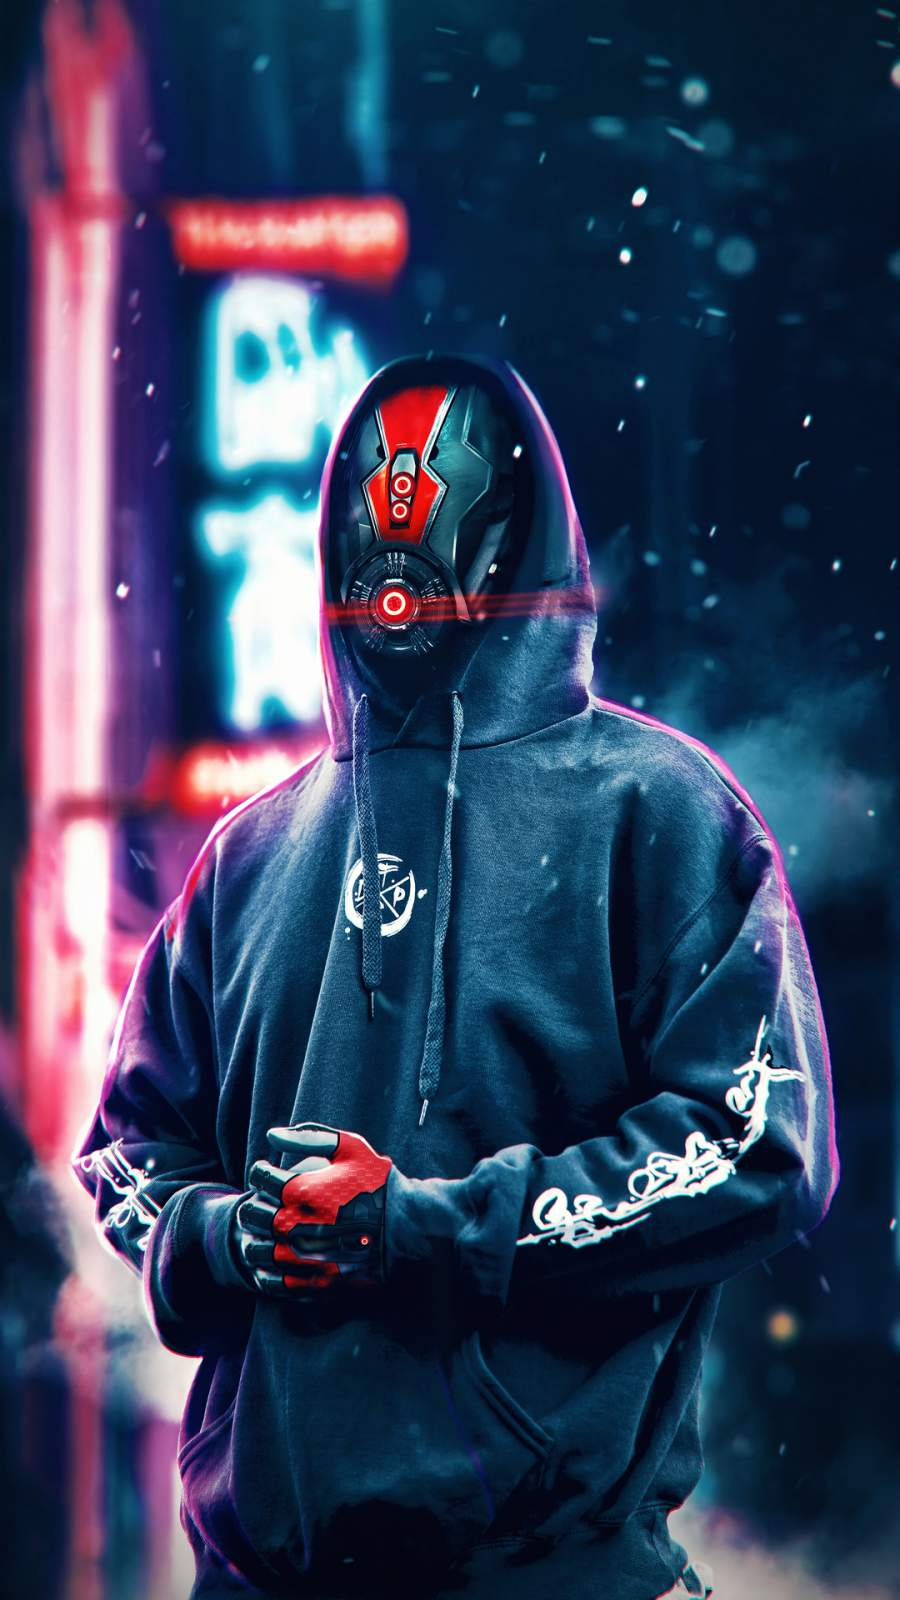 Hoodie Robot SciFi iPhone Wallpaper